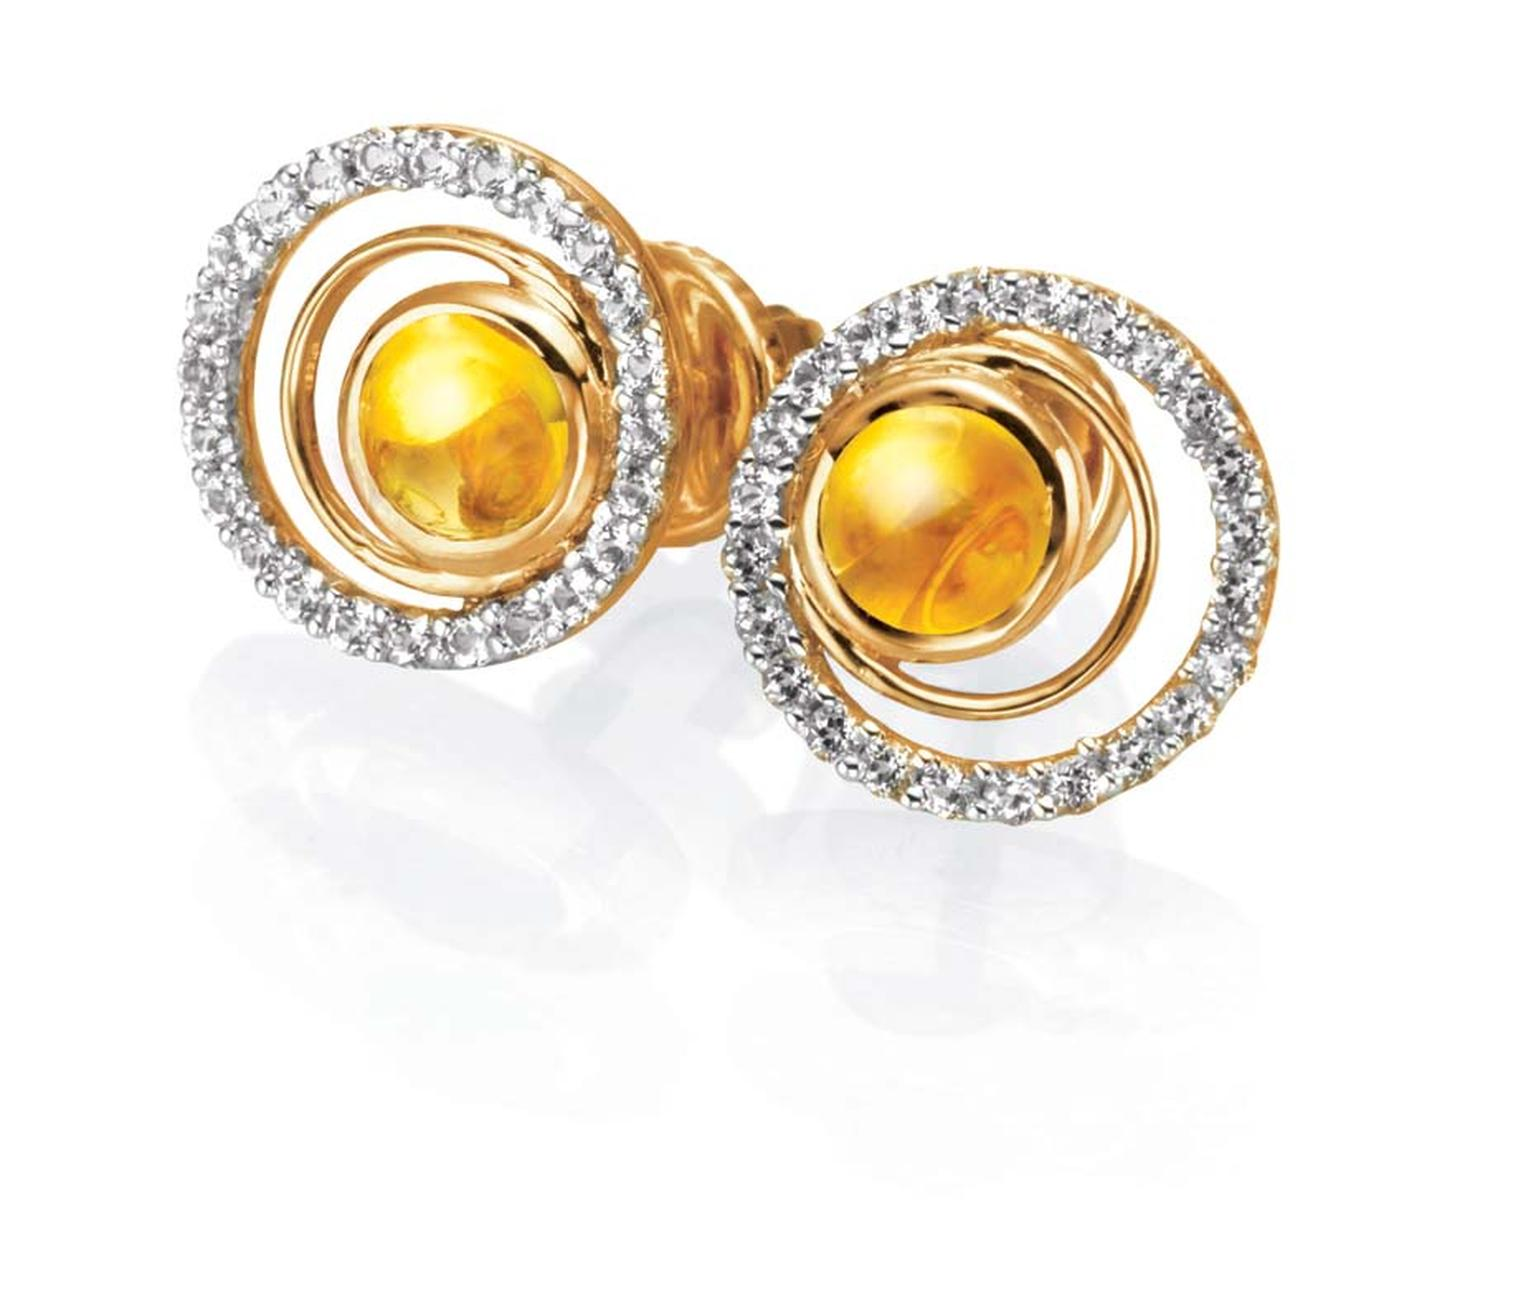 Tanishq IVA 2 collection gold circular ear studs with diamonds and citrine.